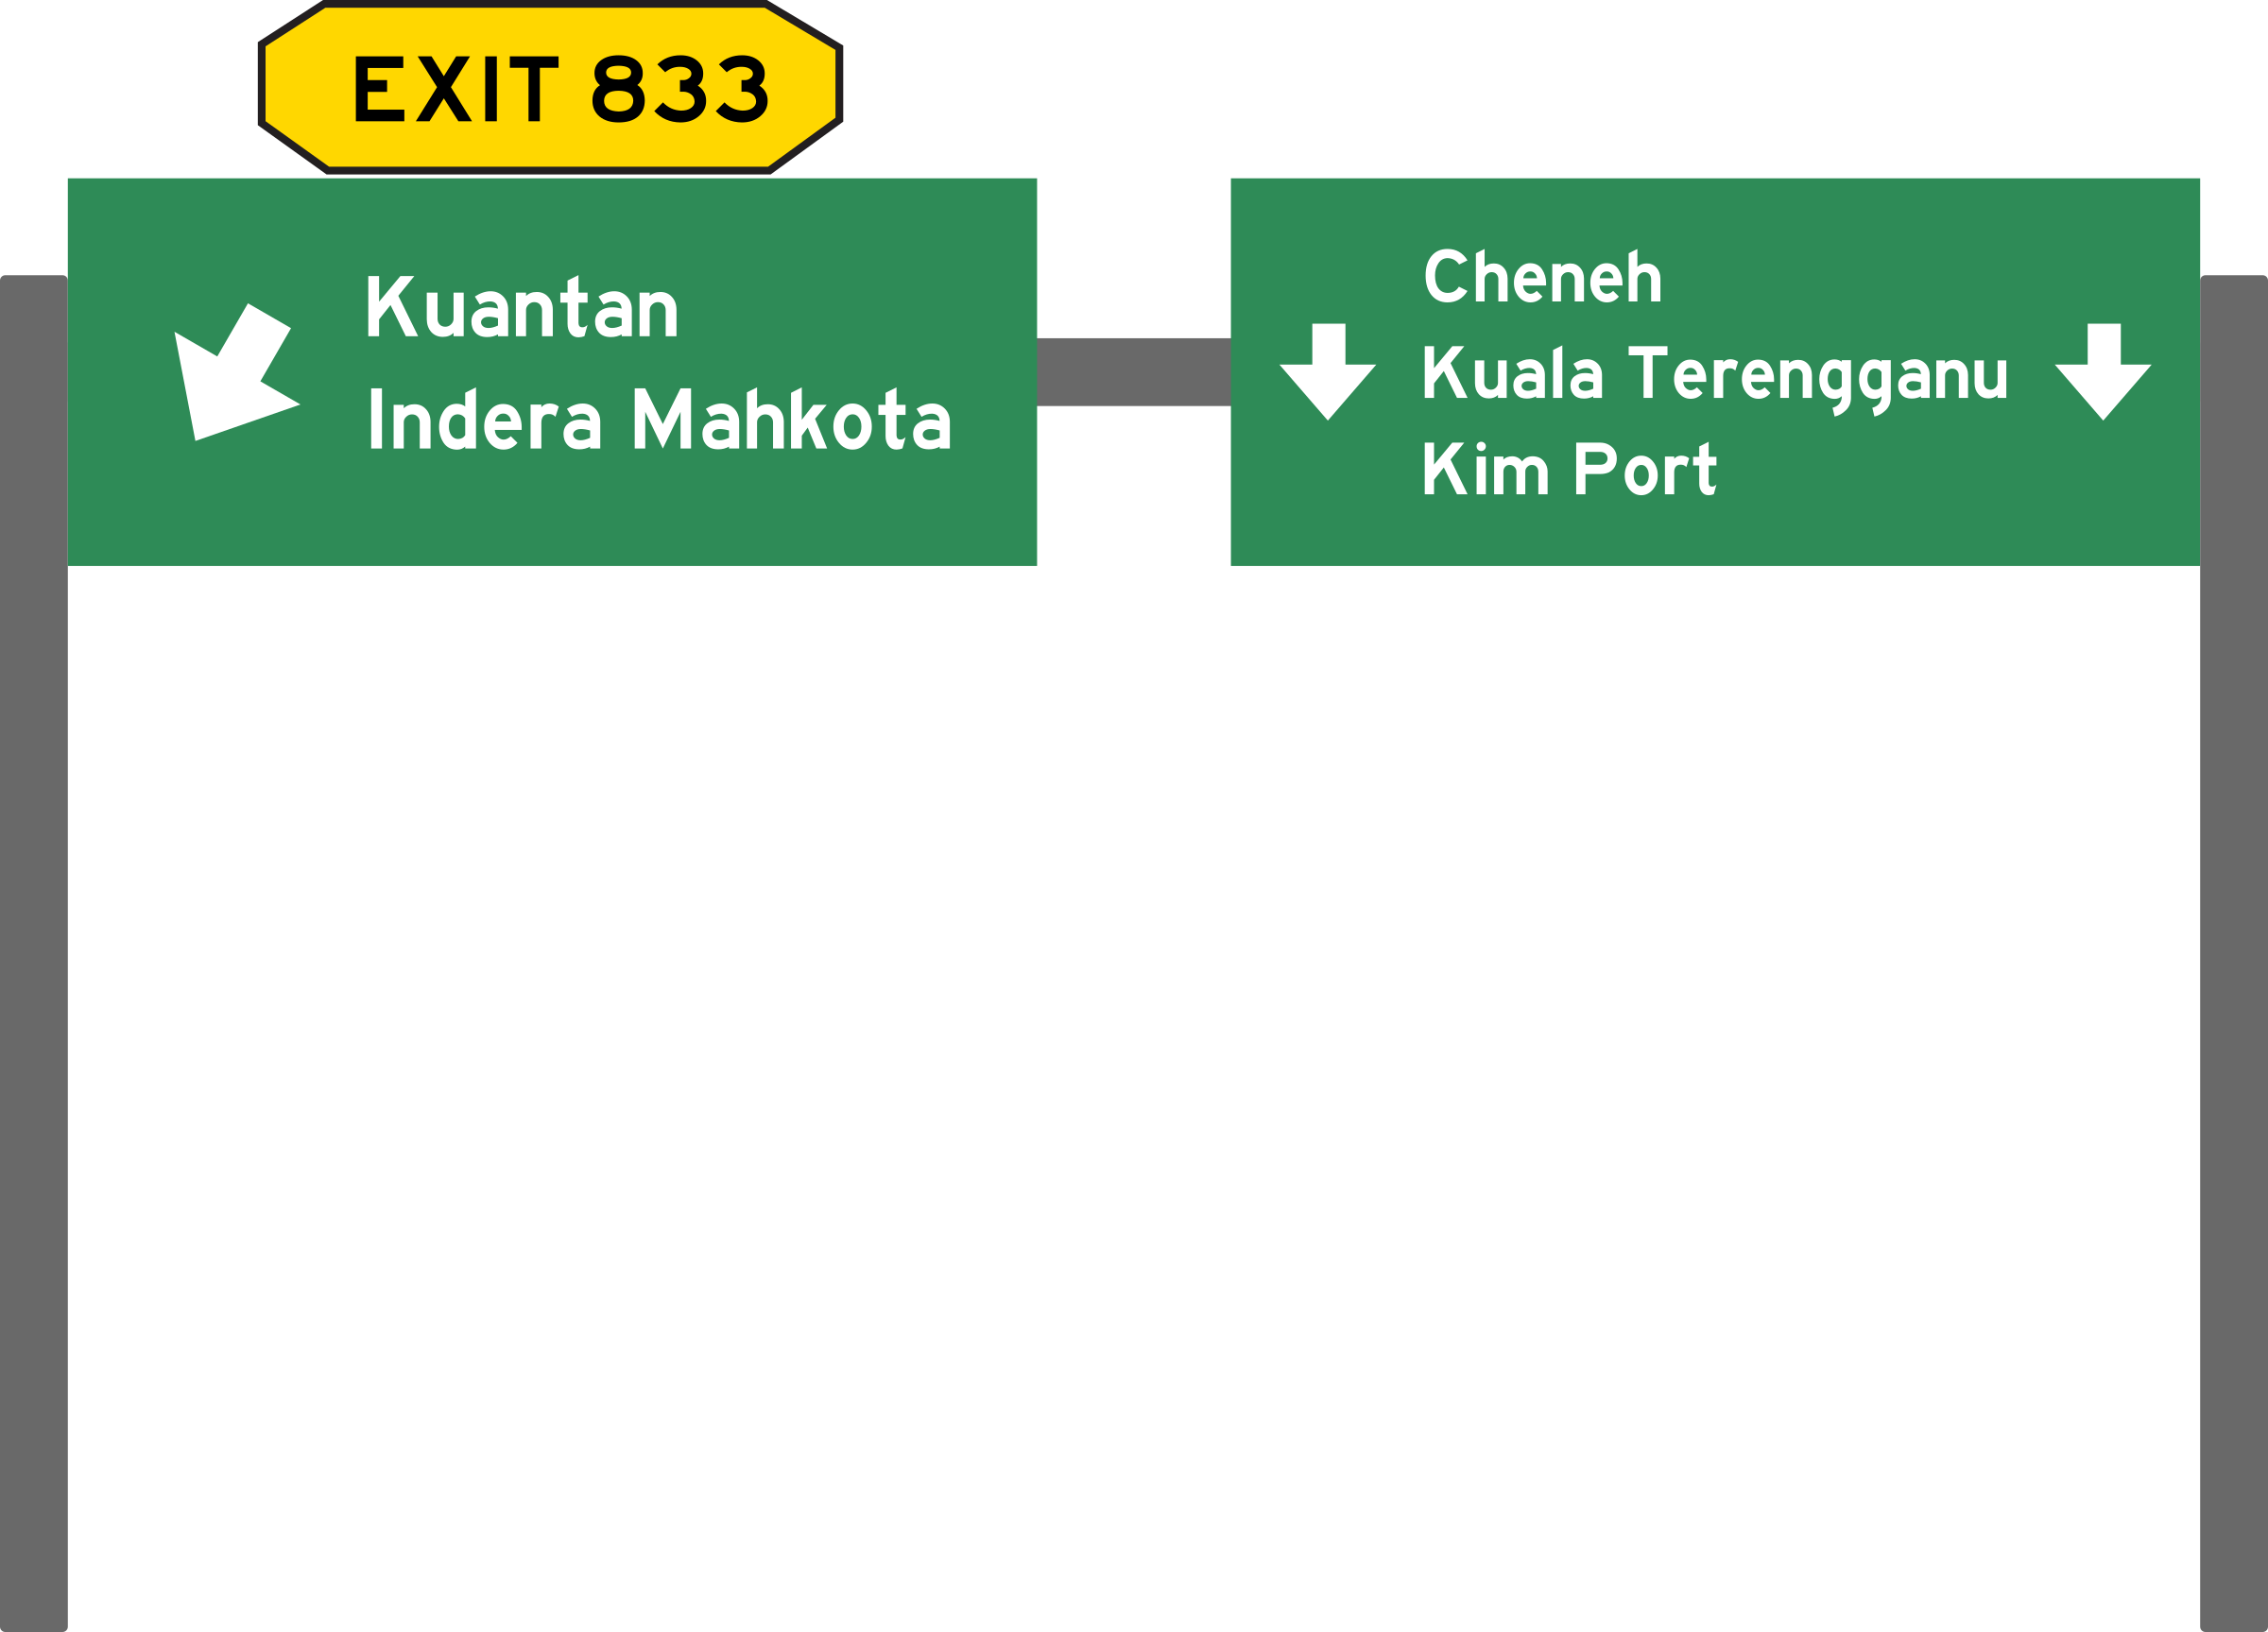 Highway clipart highway exit. Malaysia expressway roadsign big